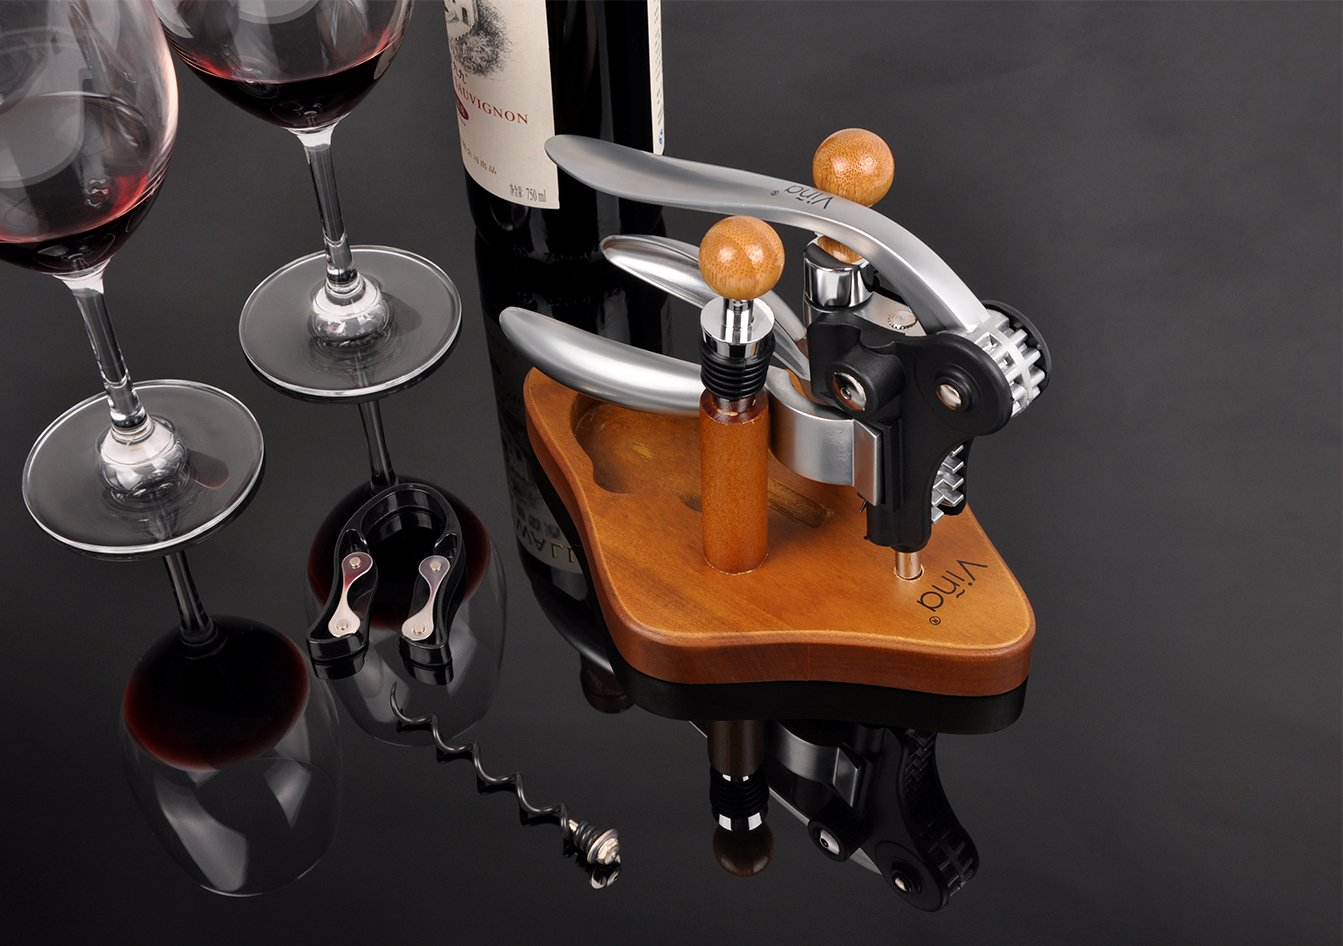 Rabbit Wine Bottle Opener Set with Bamboo Stand, 5 Piece Lever Corkscrew Remover, 2 Wine Stoppers, Foil Cutter, Extra Teflon Spiral, Best Gift for Wine Lover by Vina